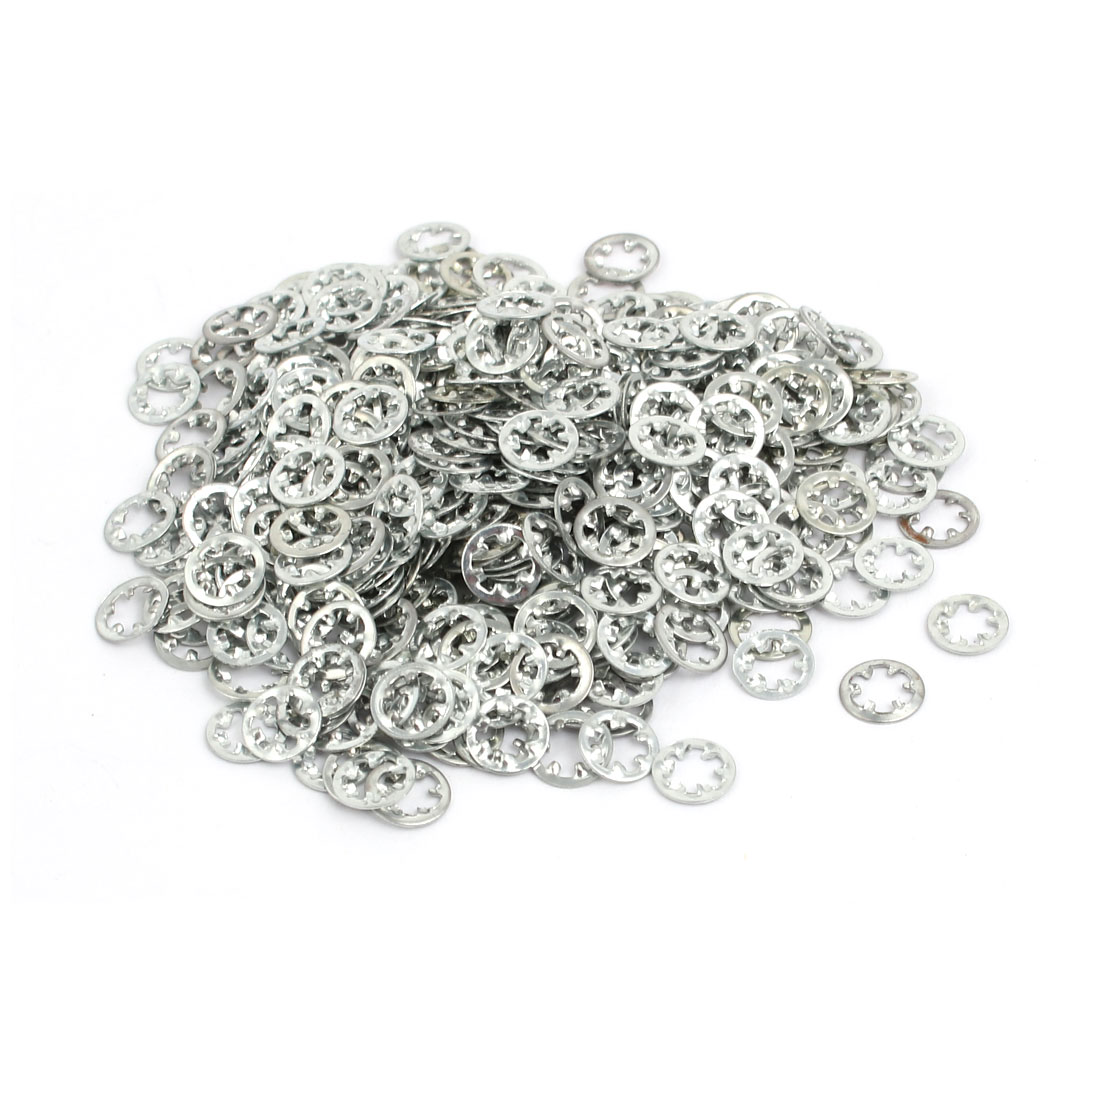 3mm Inner Dia Carbon Steel Zinc Plated Internal Tooth Lock Washer 500pcs